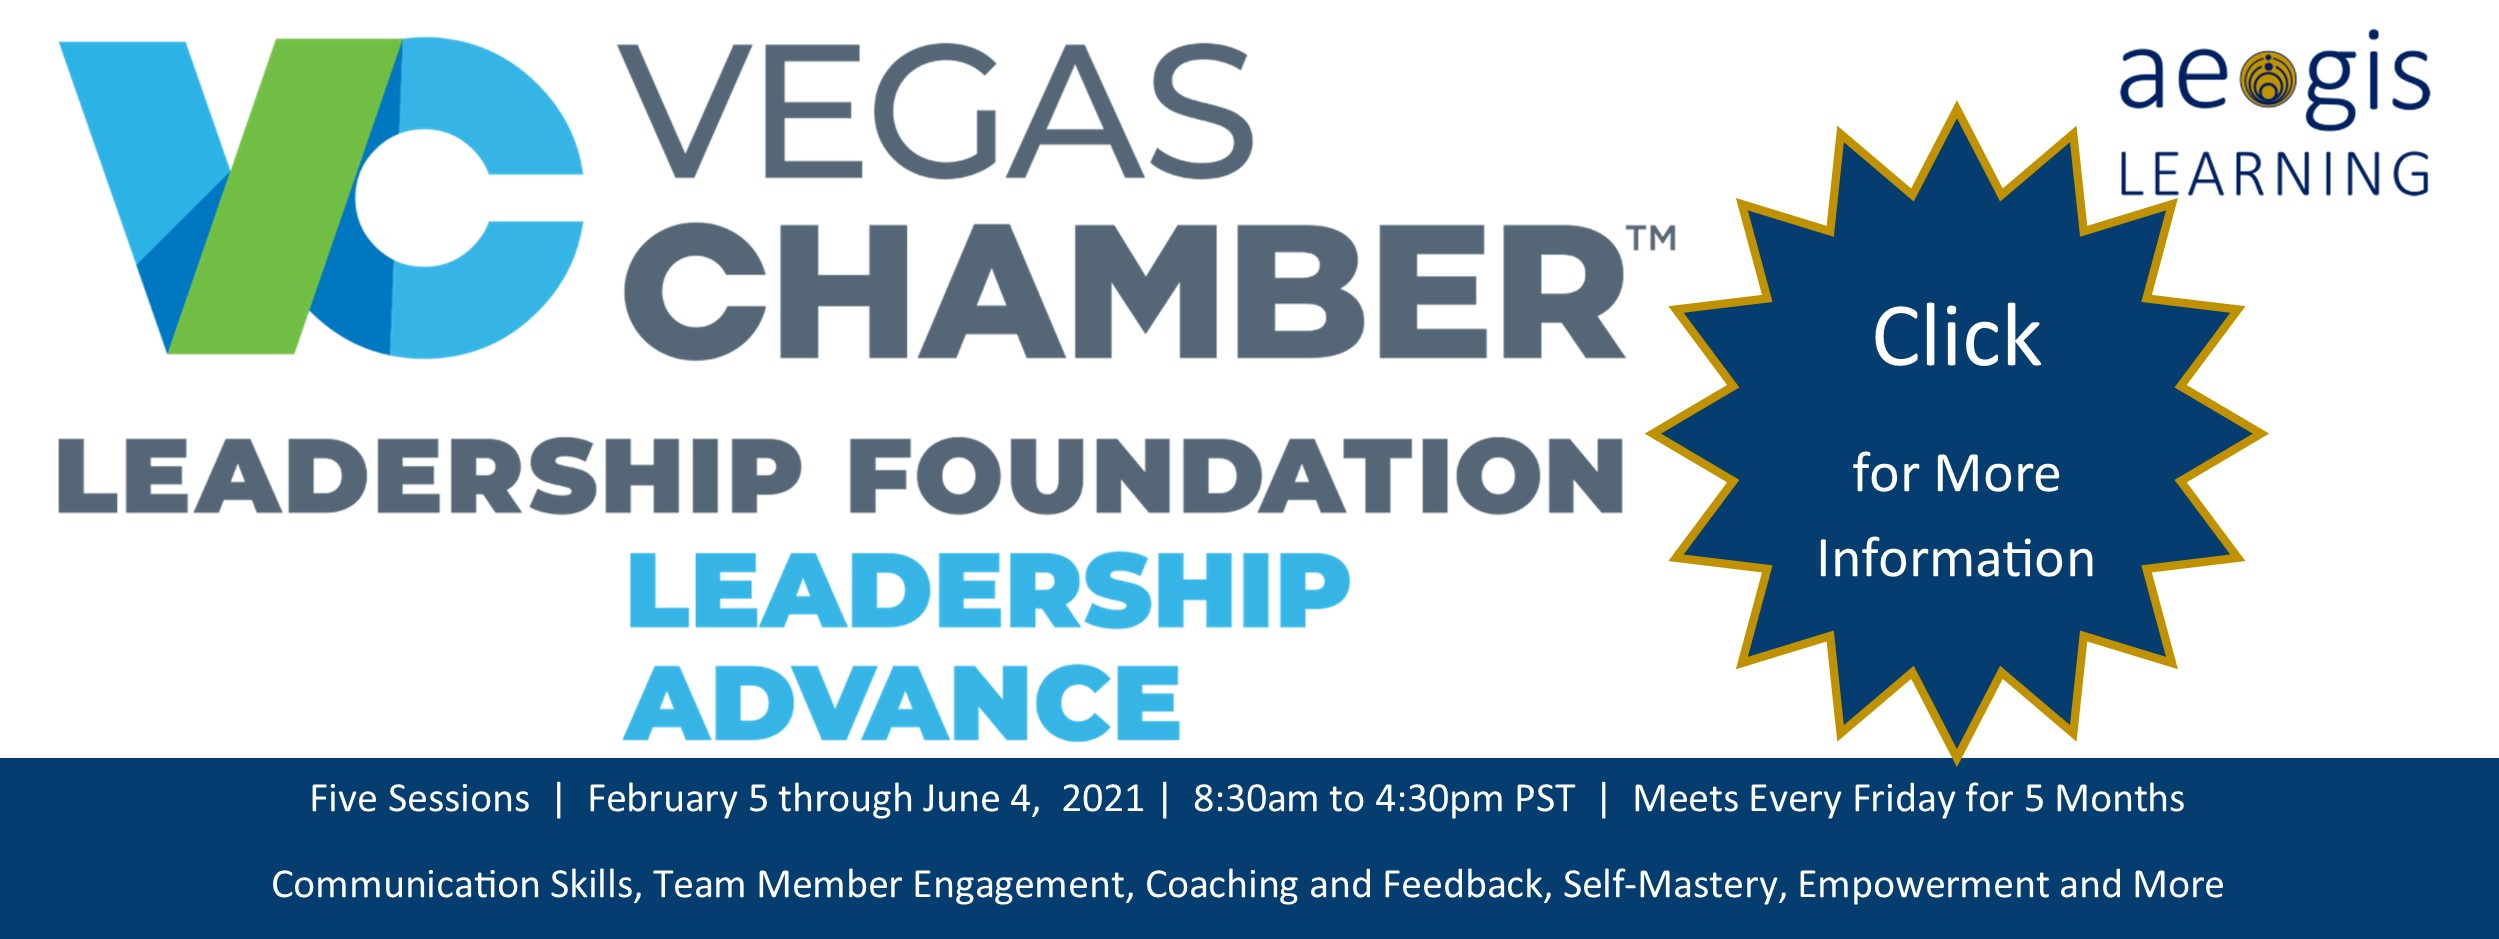 Leadership Advance from the Vegas Chamber and Aegis Learning